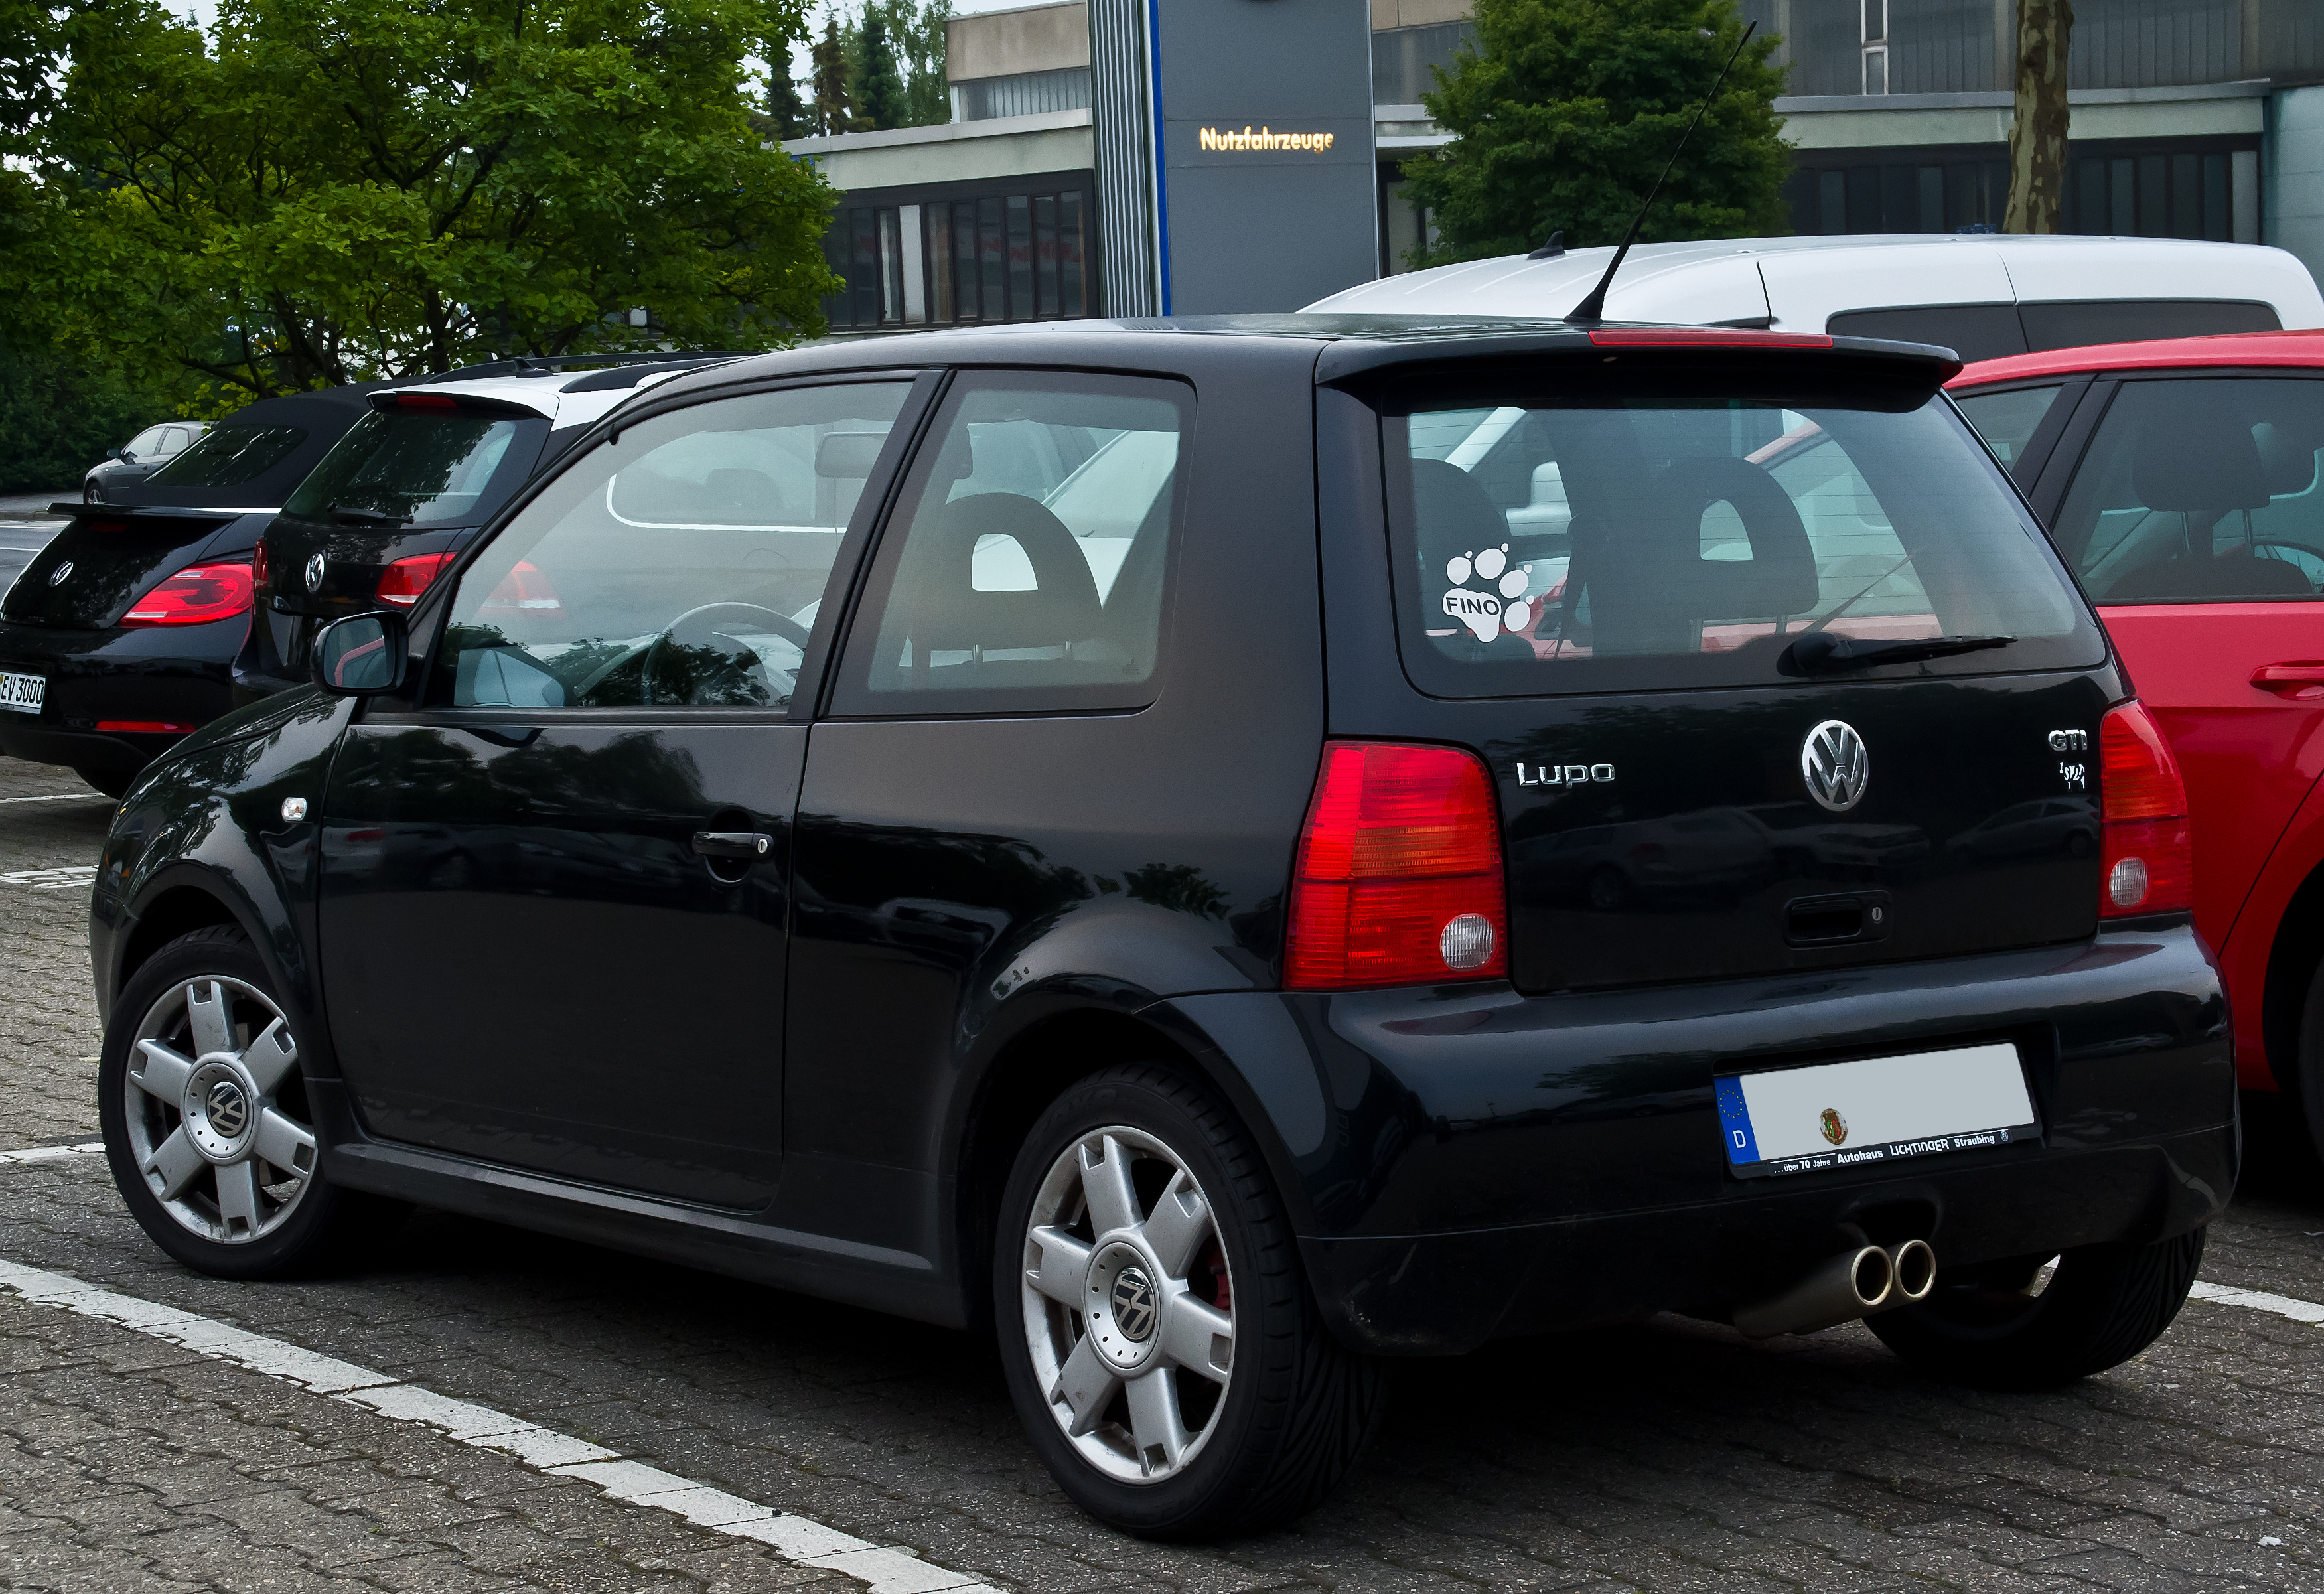 VW Lupo GTI – Heckansicht 15. Juni 2014 Hilden - The Volkswagen Lupo that never was